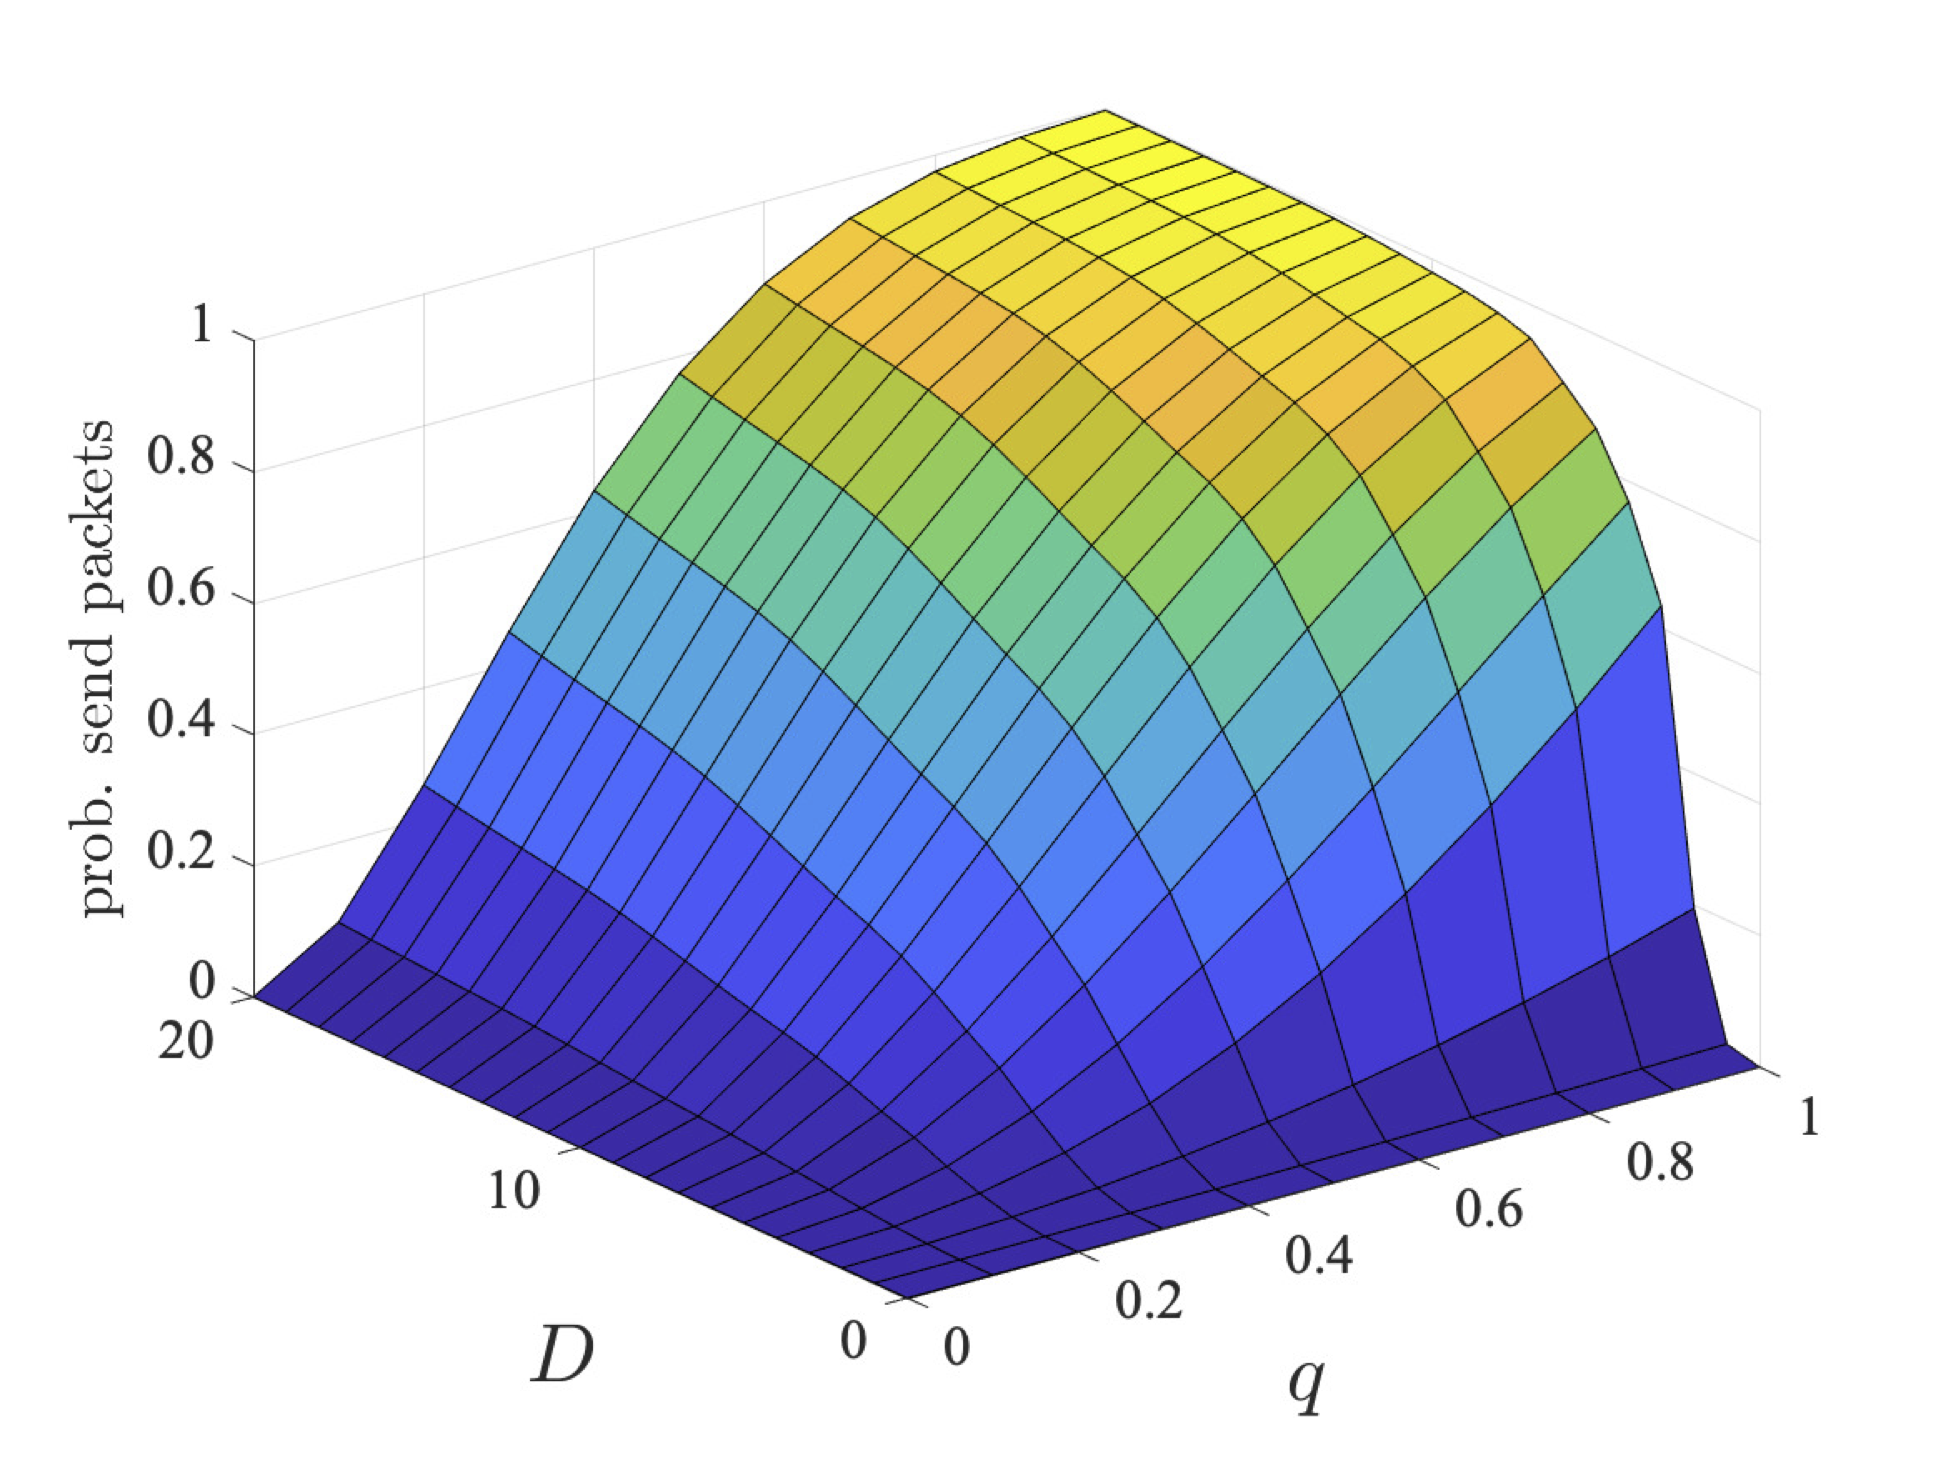 plot: maximum probability users 2 and 3 can ensure they send their packets within a deadline (bcmax=4)